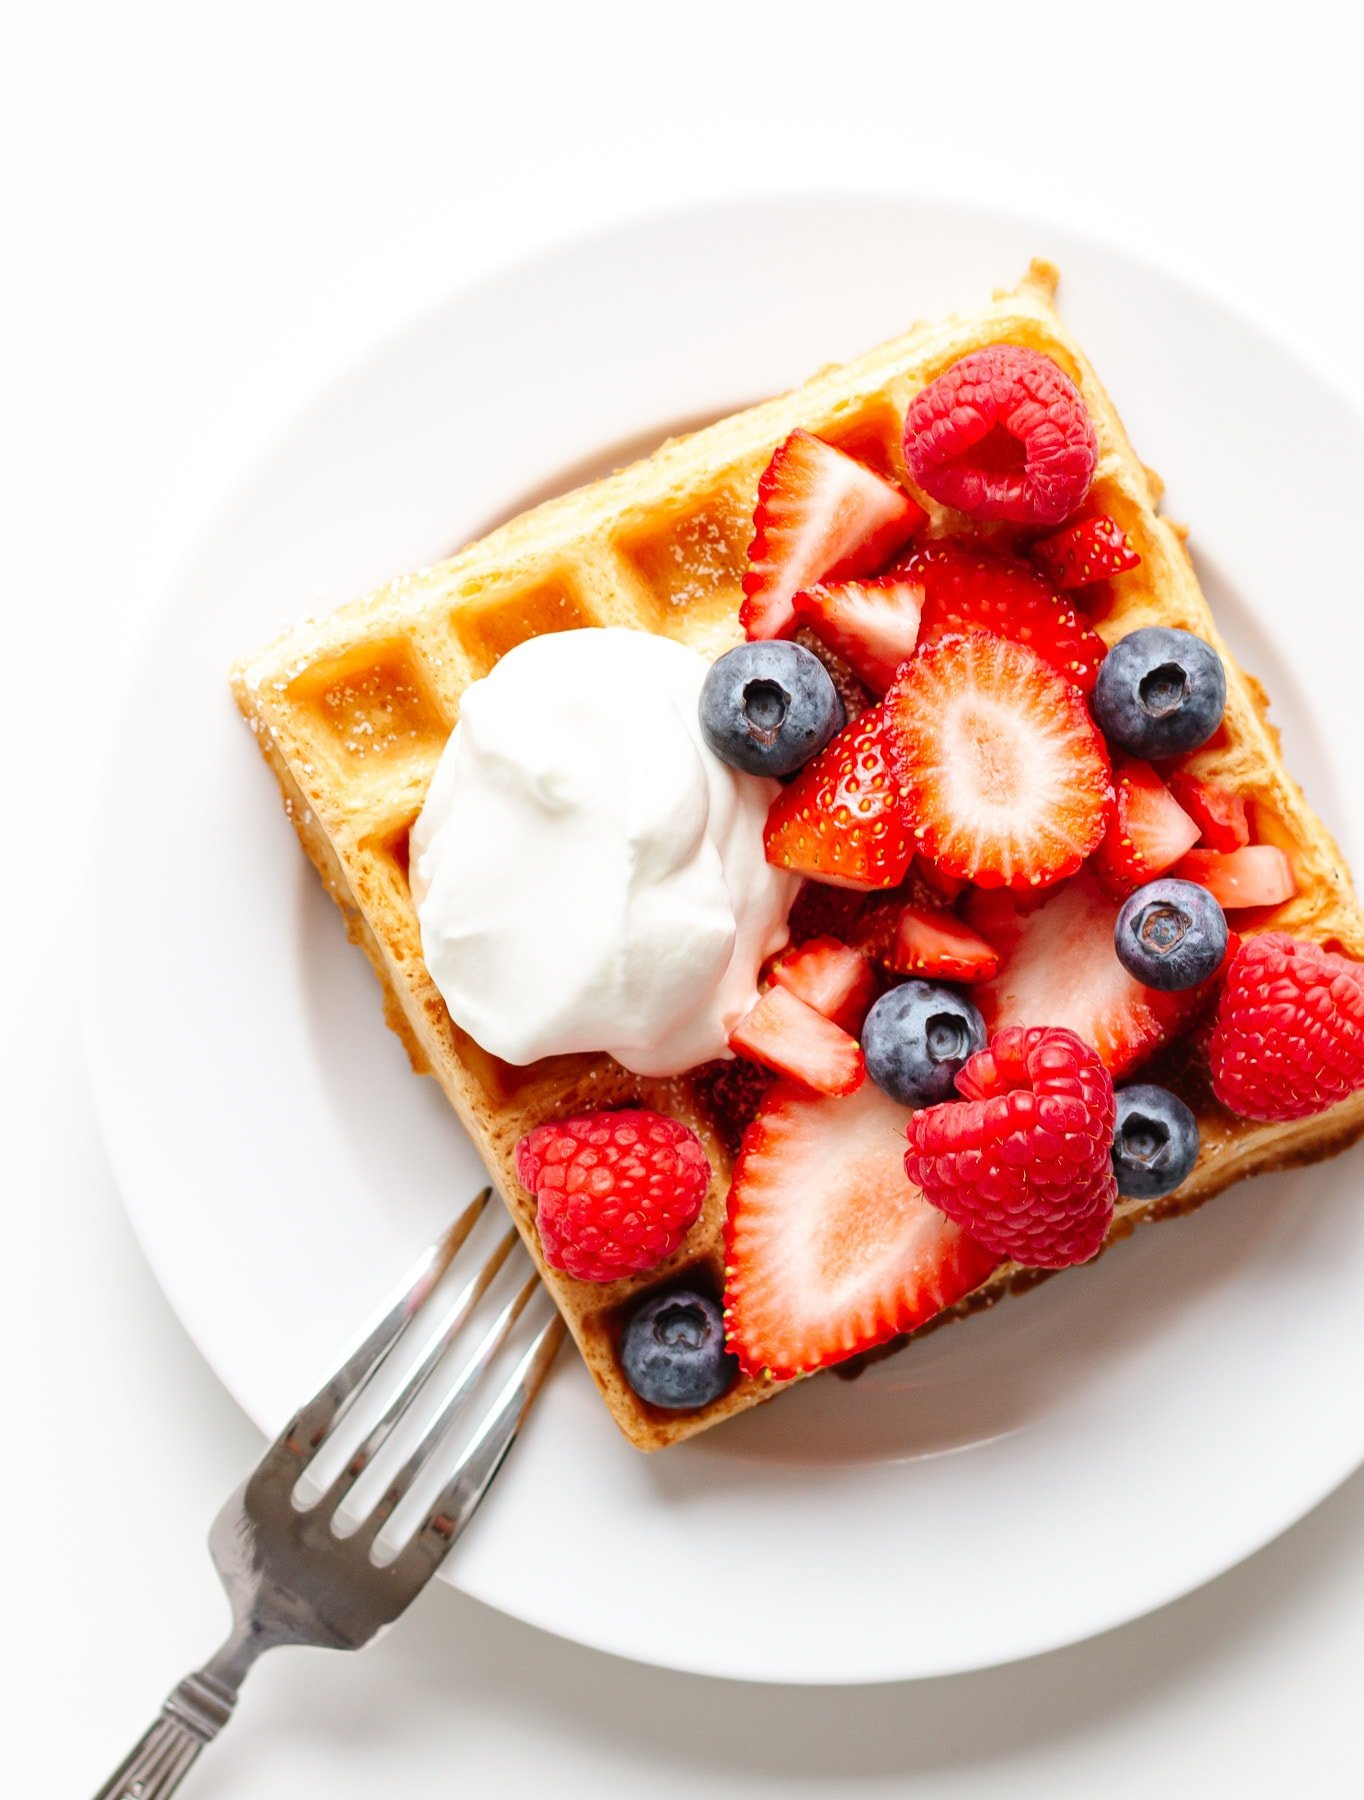 Square waffle topped with mixed berries and a dollop of whipped cream on a white plate.